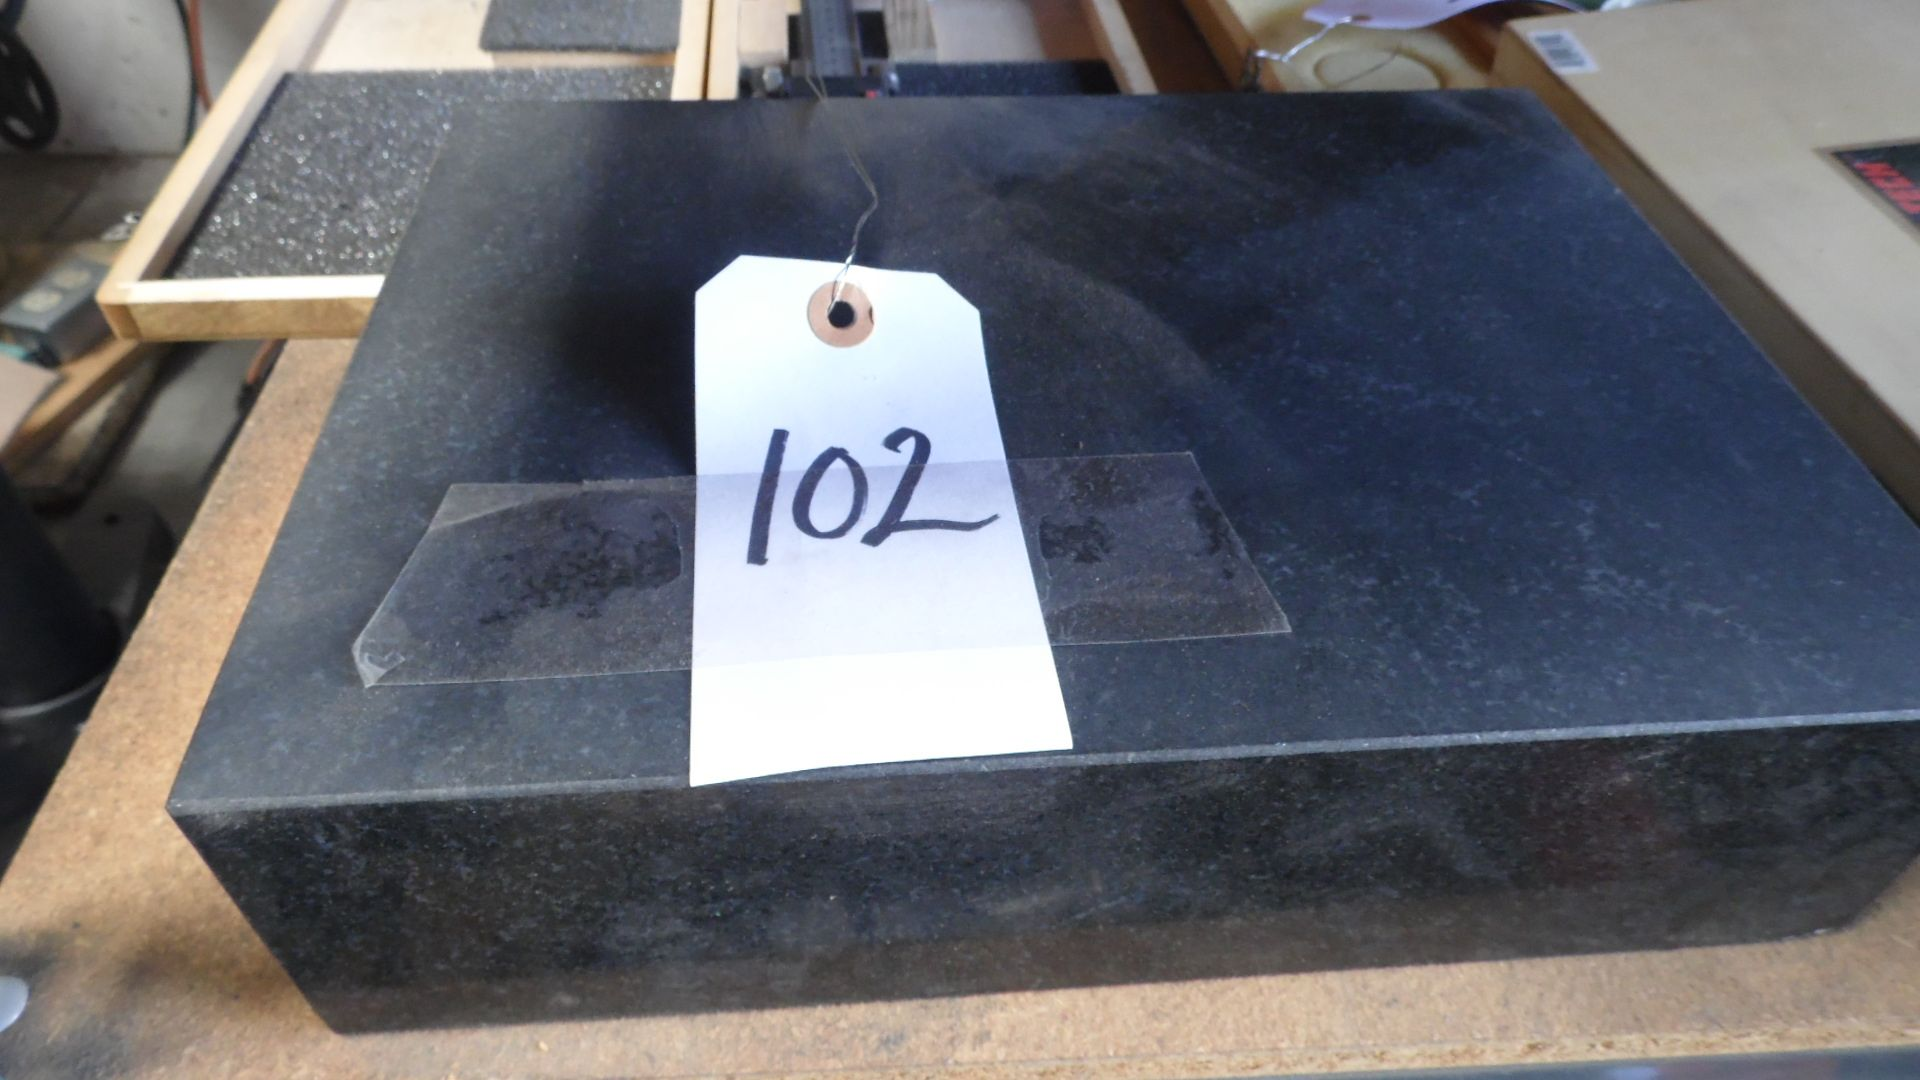 Lot 102 - 9 X 12 SURFACE PLATES